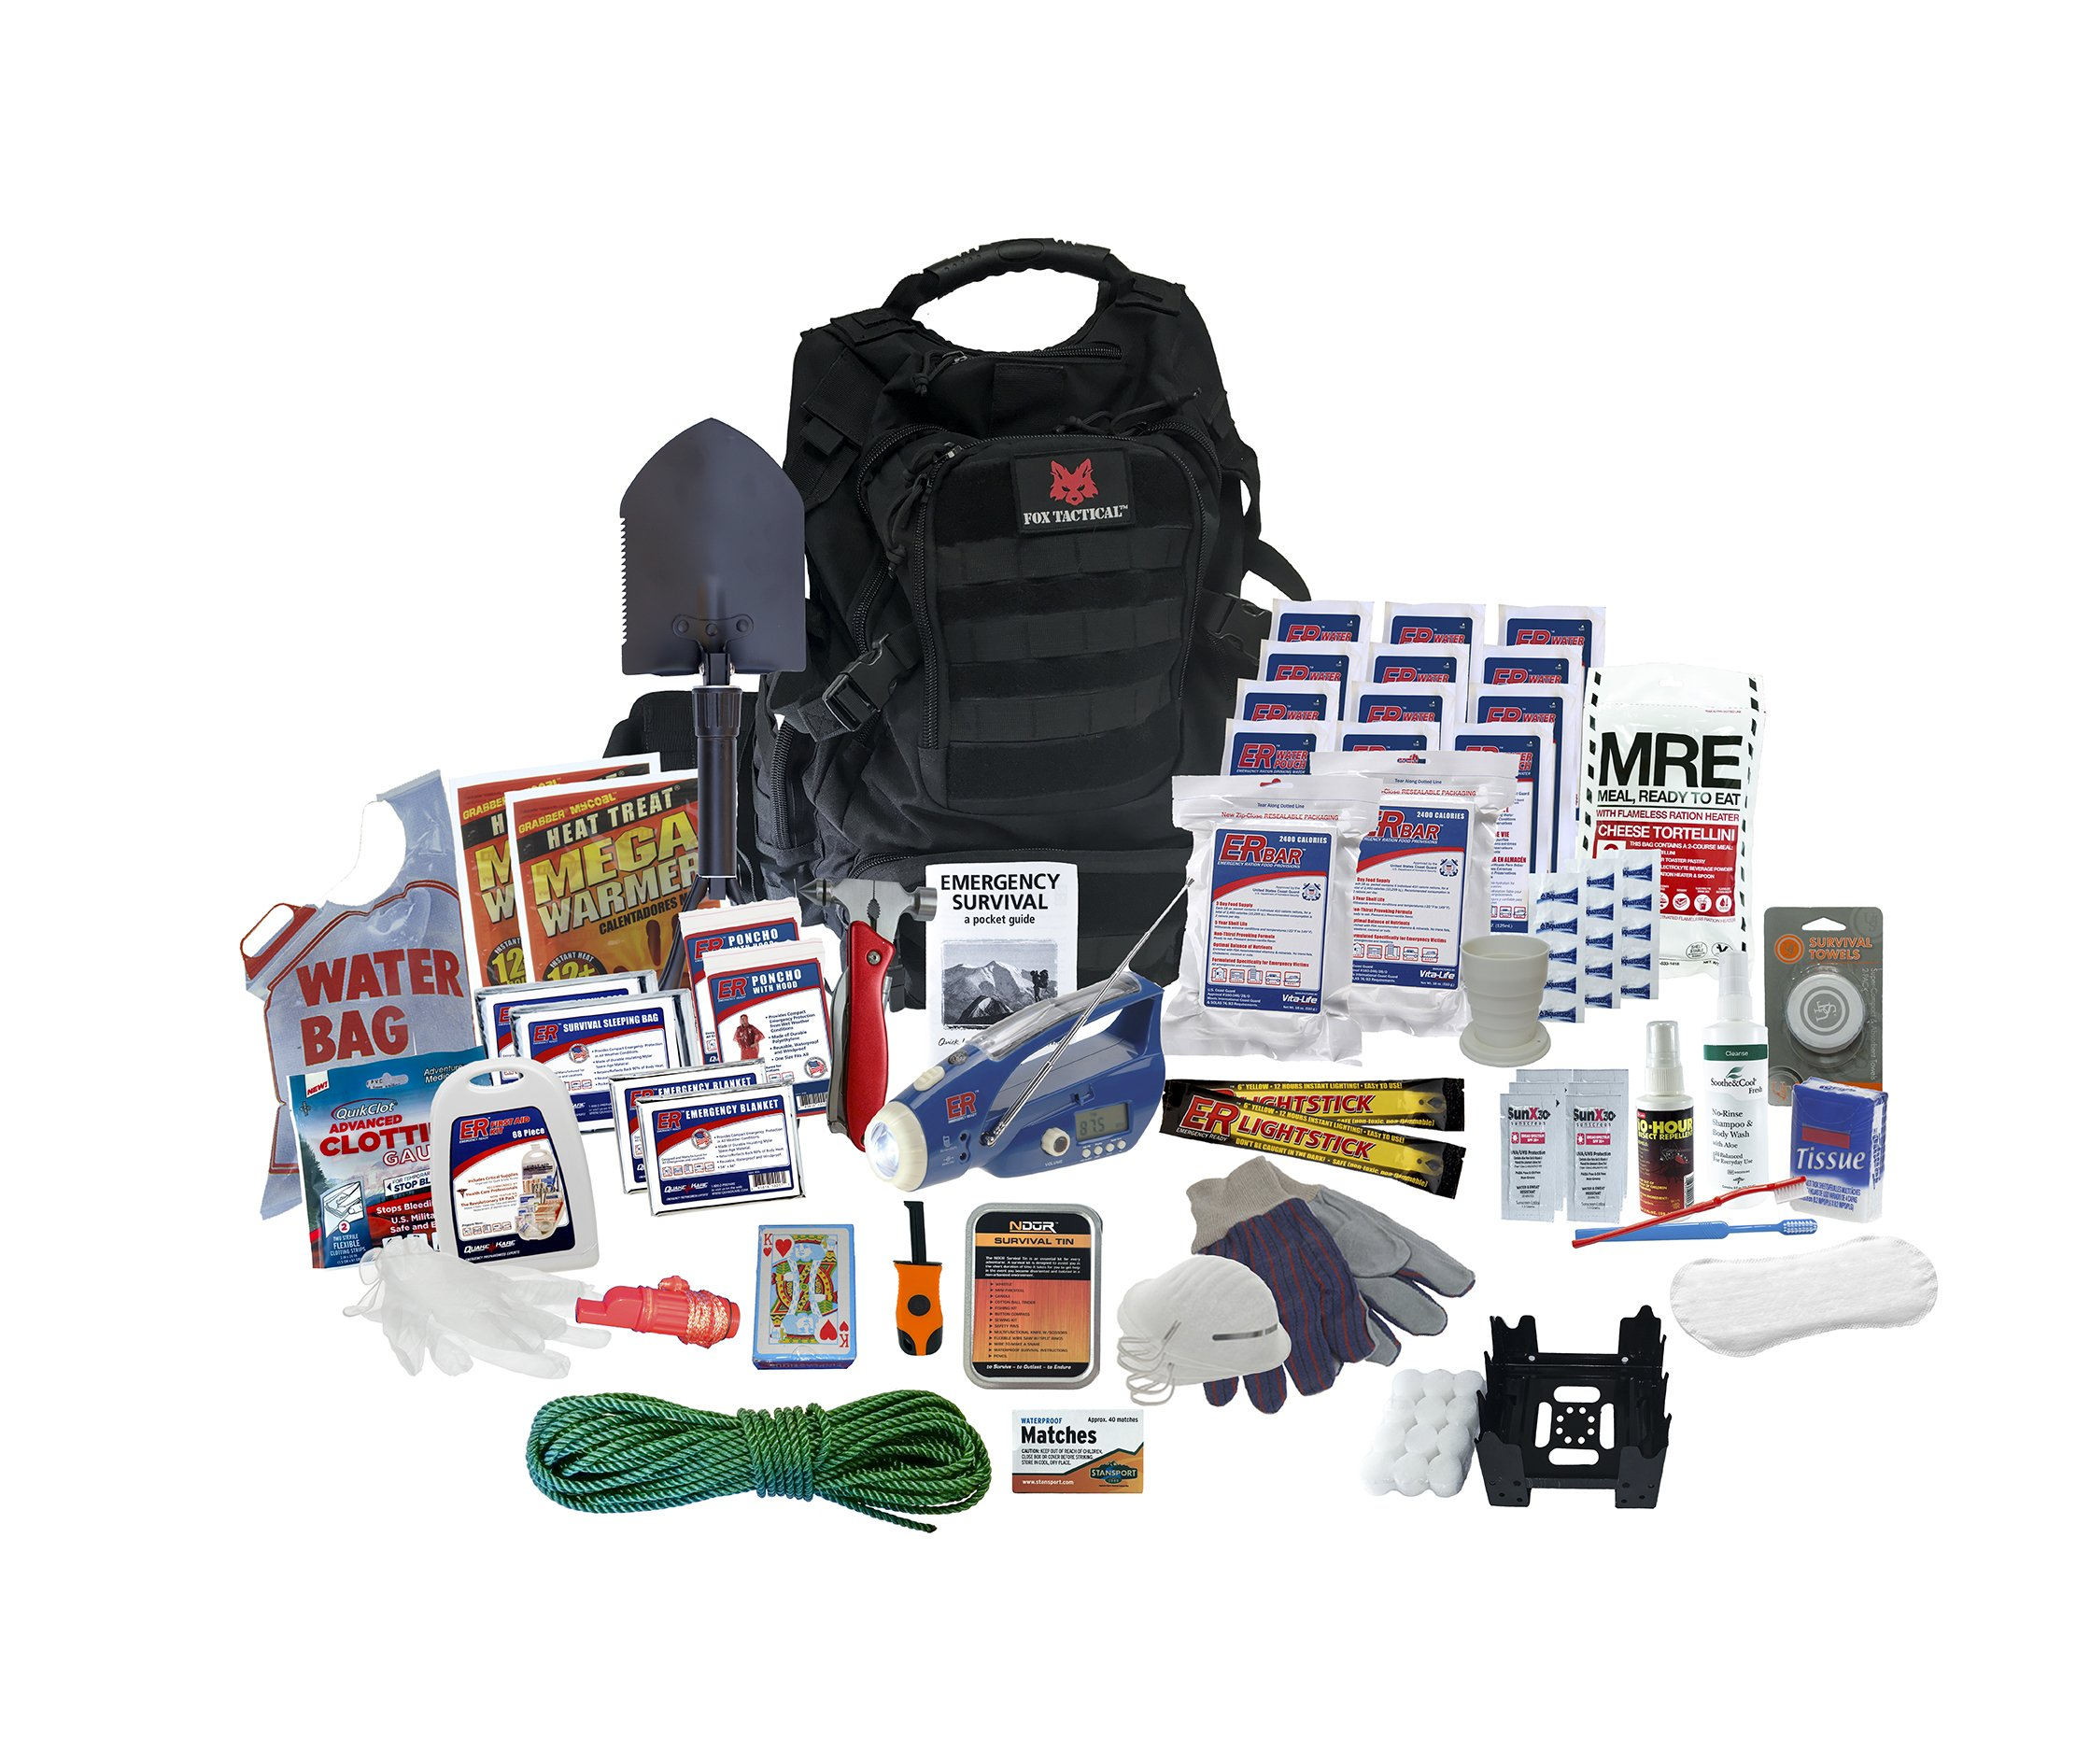 ER Emergency Ready SKBOB Ultimate bug-out Bag